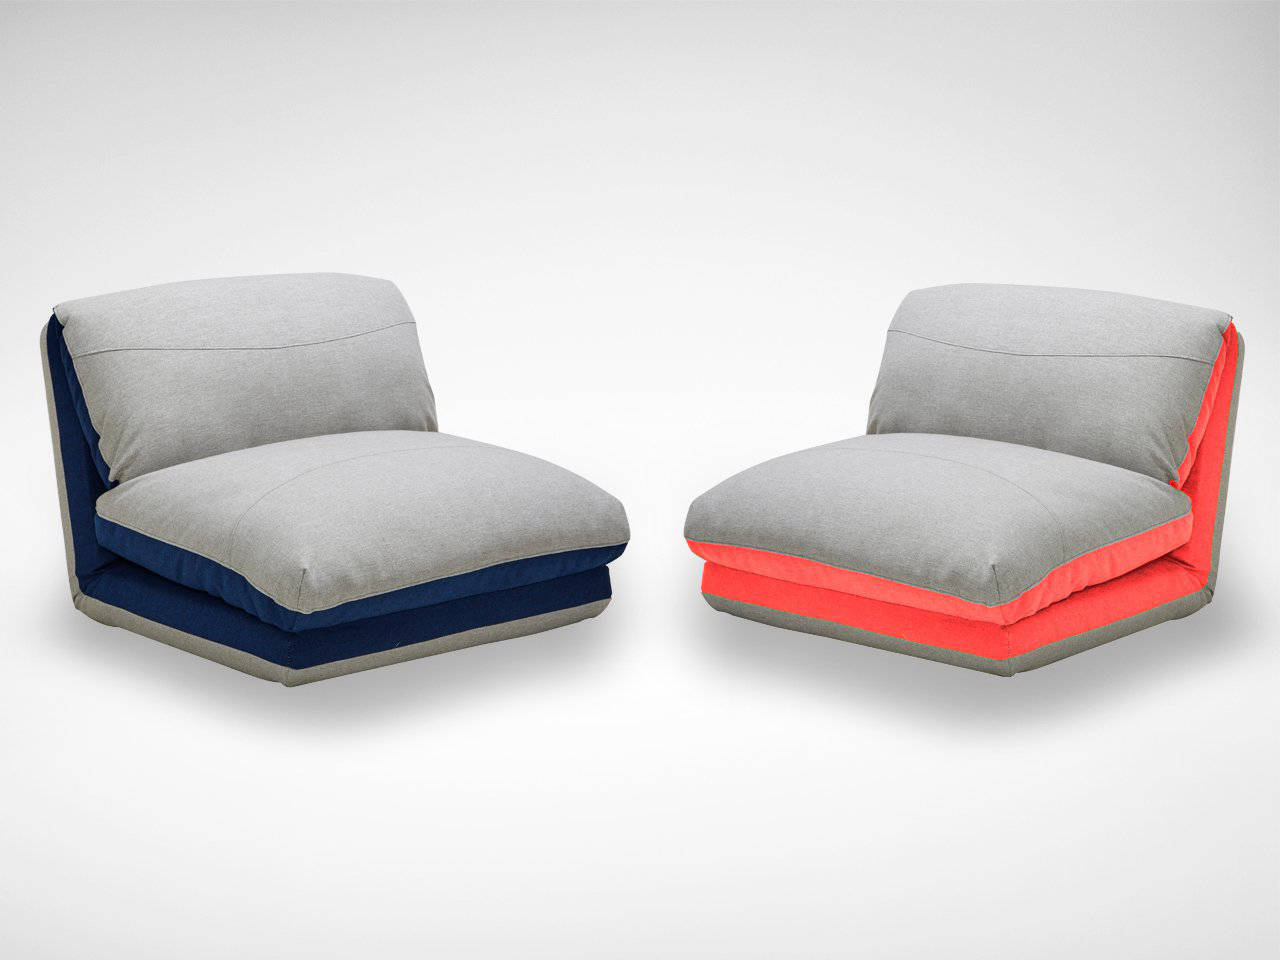 We Bet Youll Want To Sink Into These Sofa Beds Lookboxliving